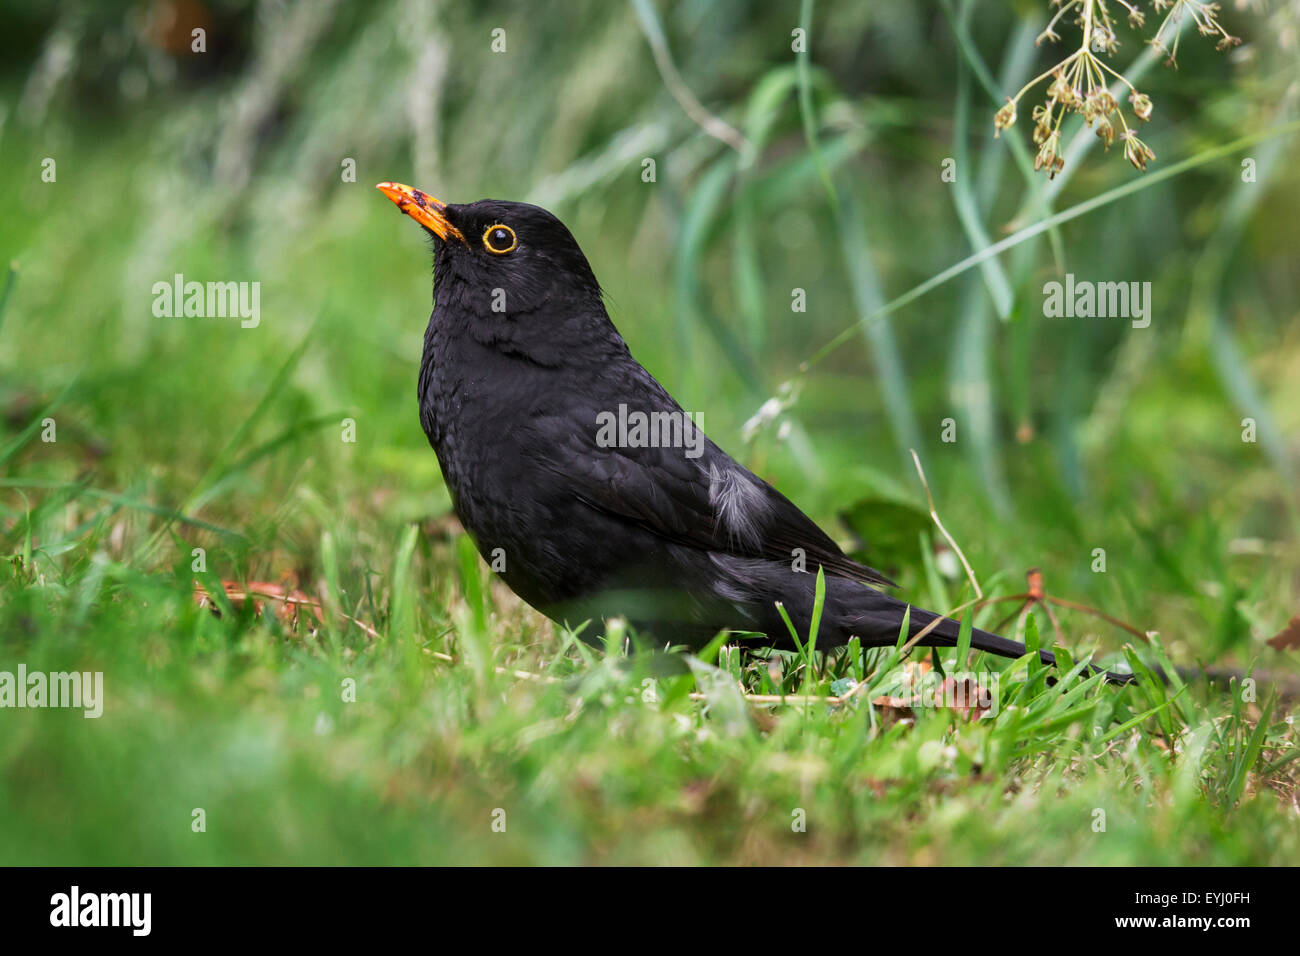 Common blackbird (Turdus merula) male on the ground showing slight form of leucism with white feathers in wing - Stock Image